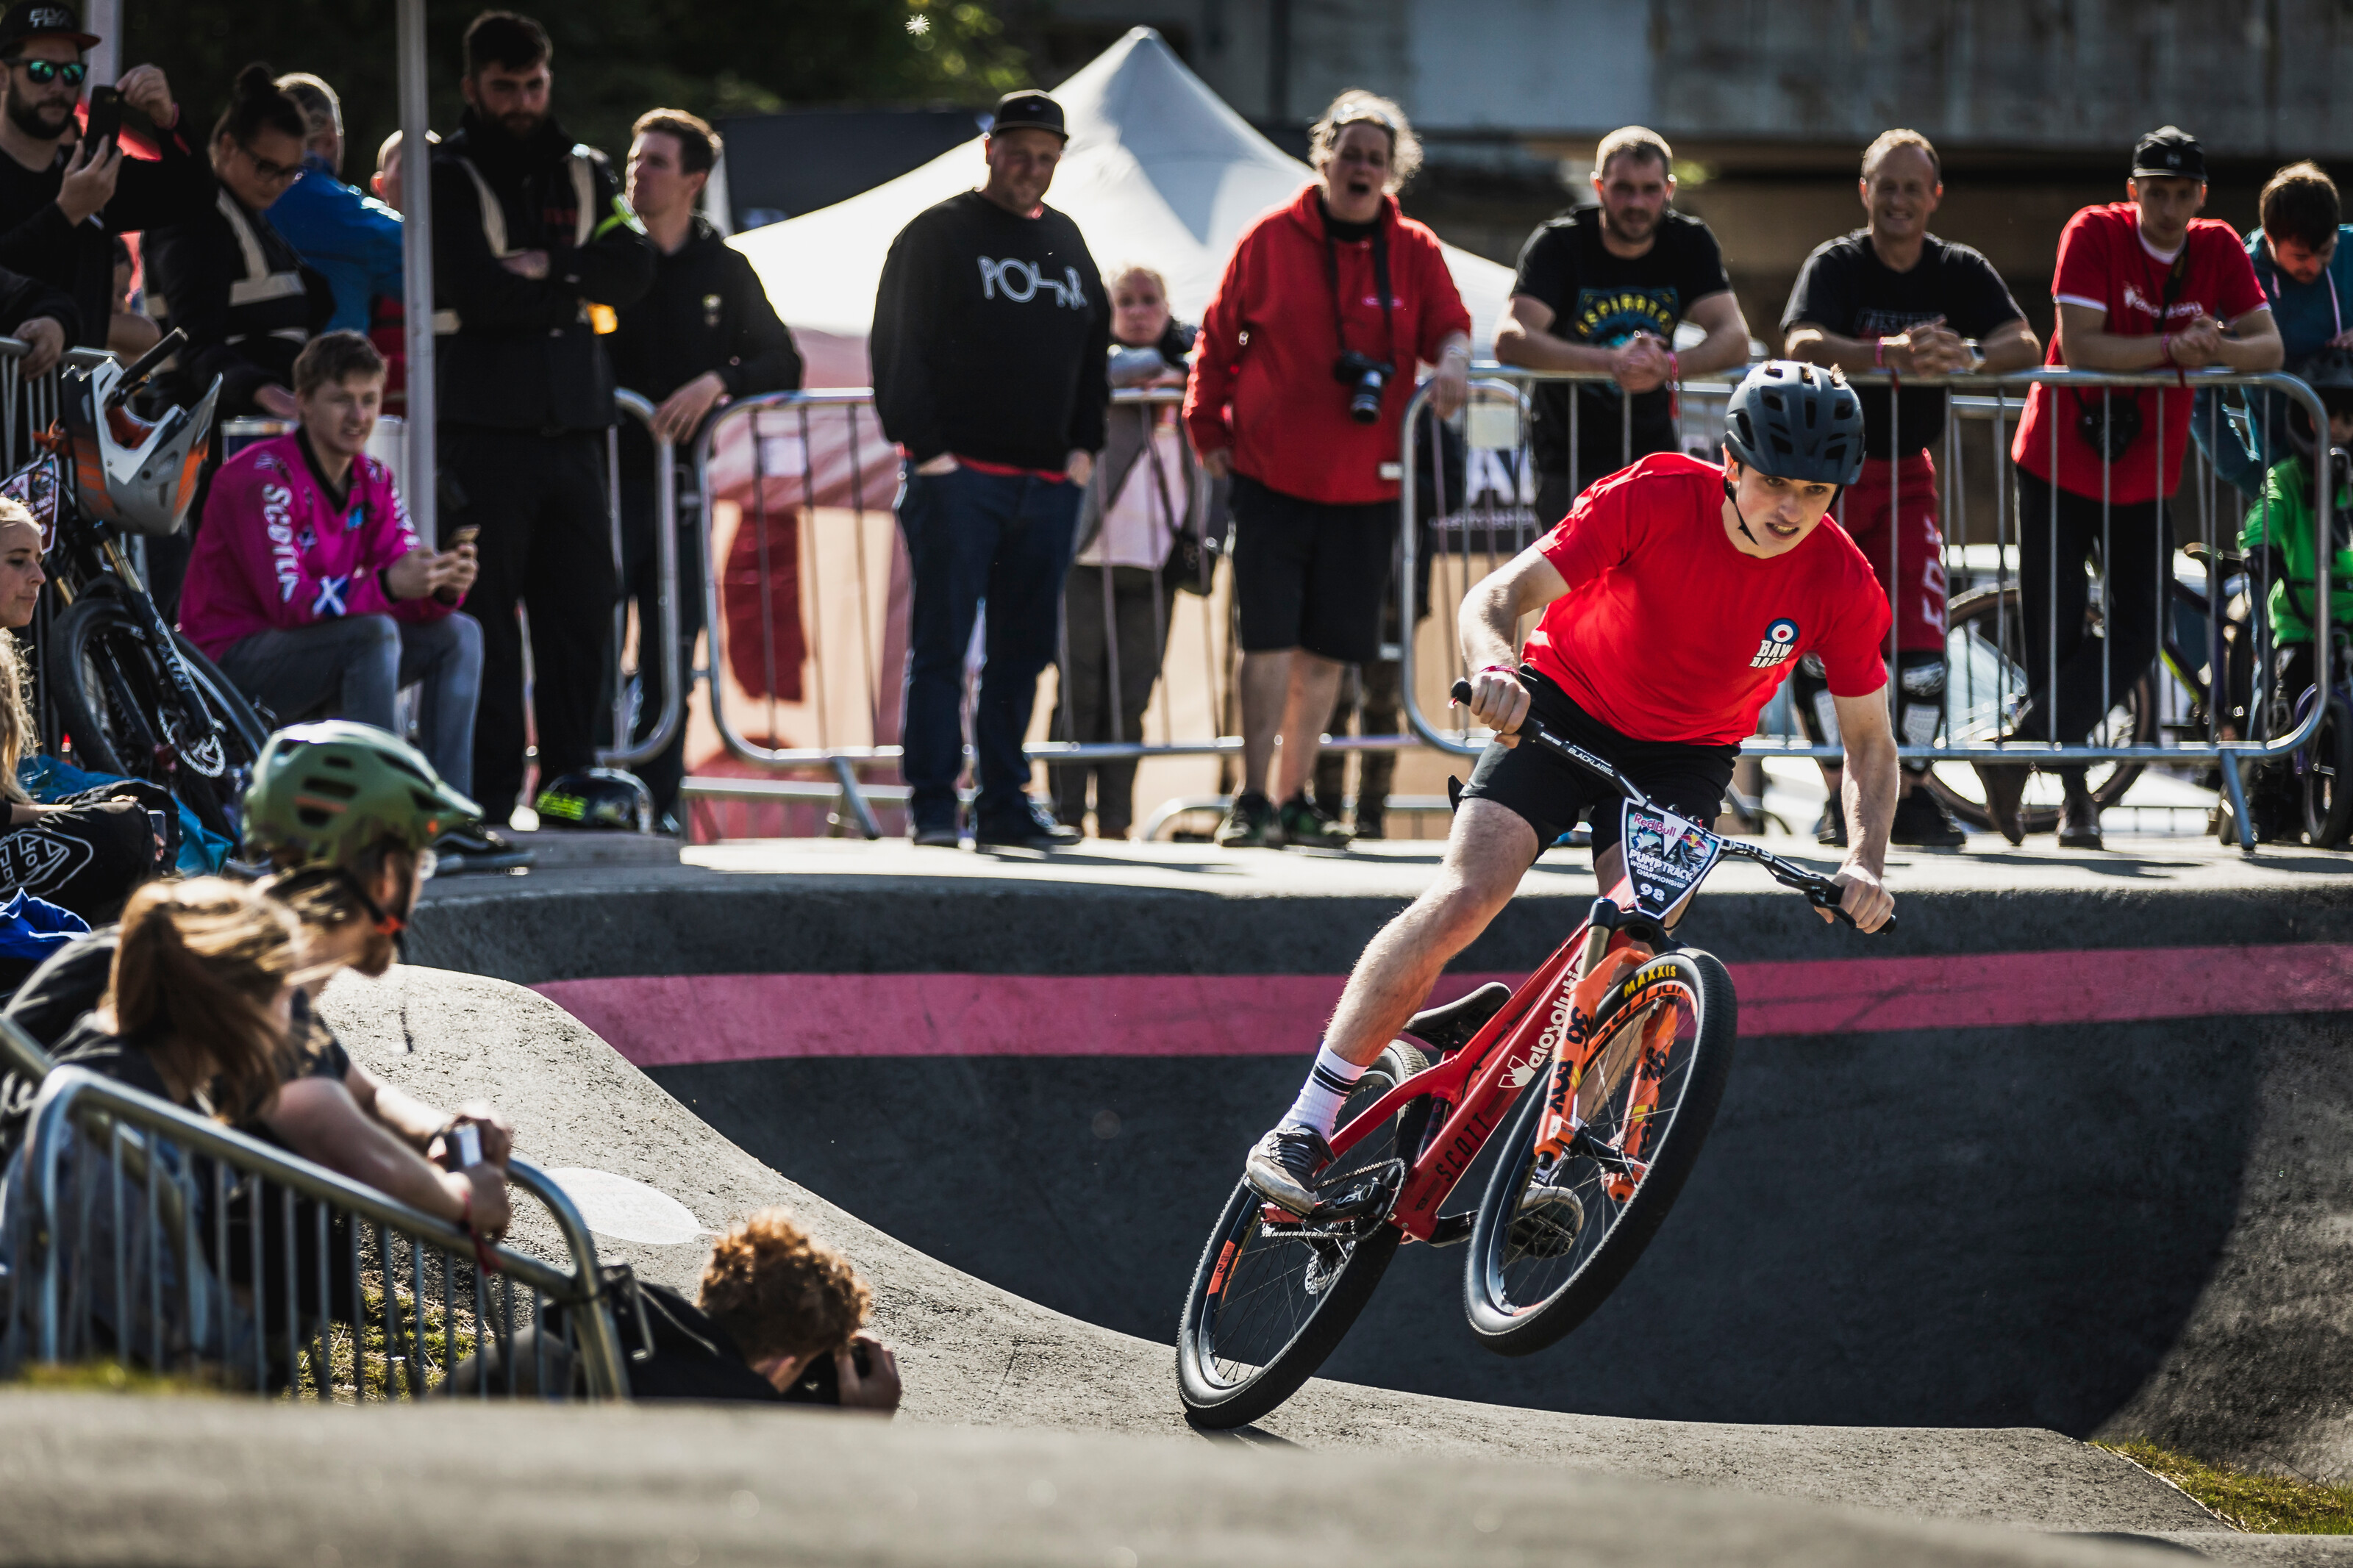 The UK smashes it as the Red Bull Pump Track World Championship touches down in Wishaw